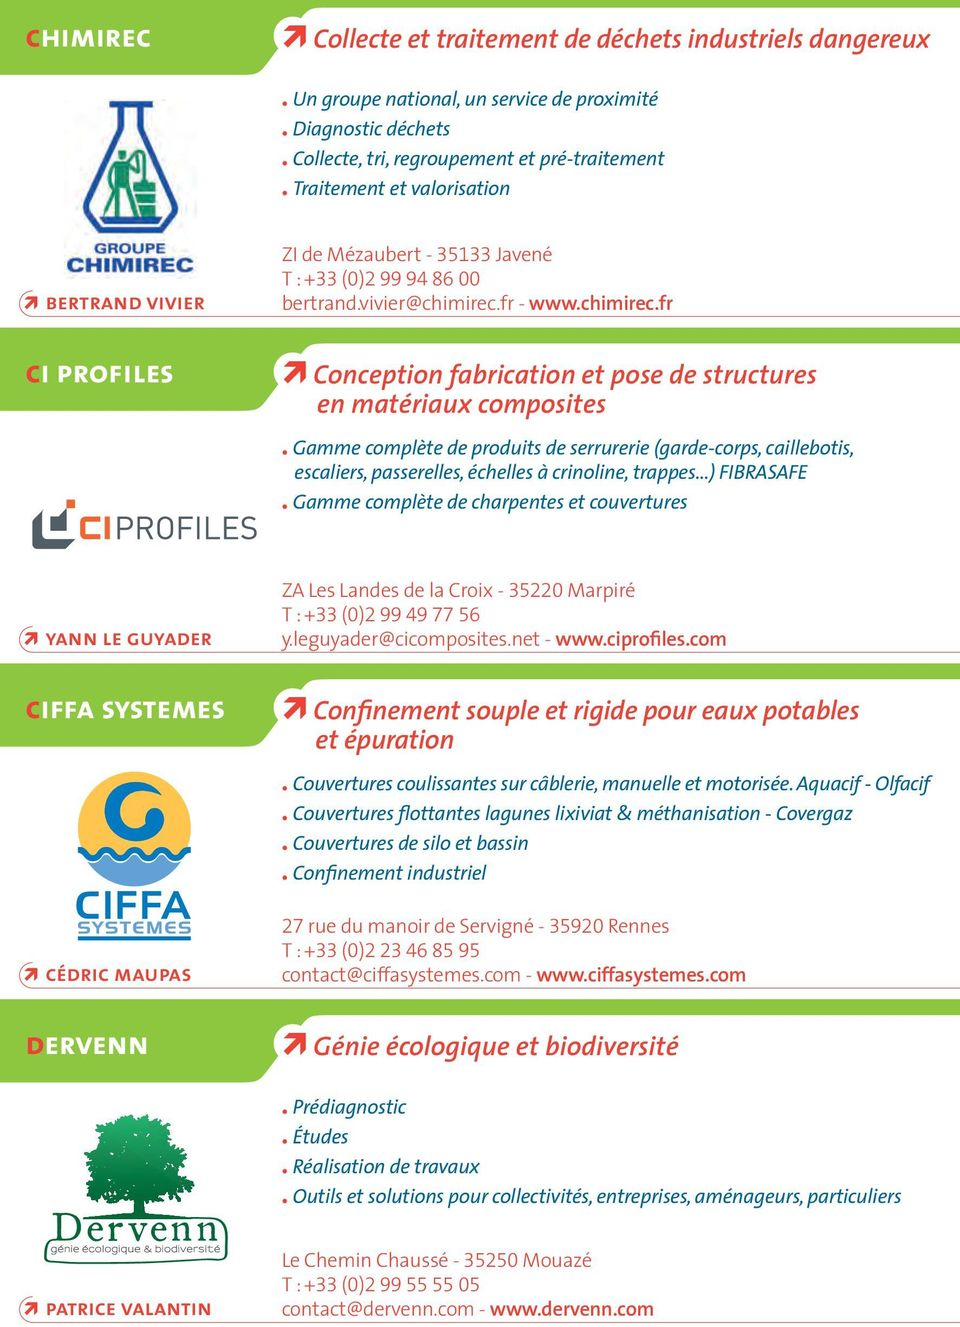 fr - www.chimirec.fr ci profiles 2 Conception fabrication et pose de structures en matériaux composites.